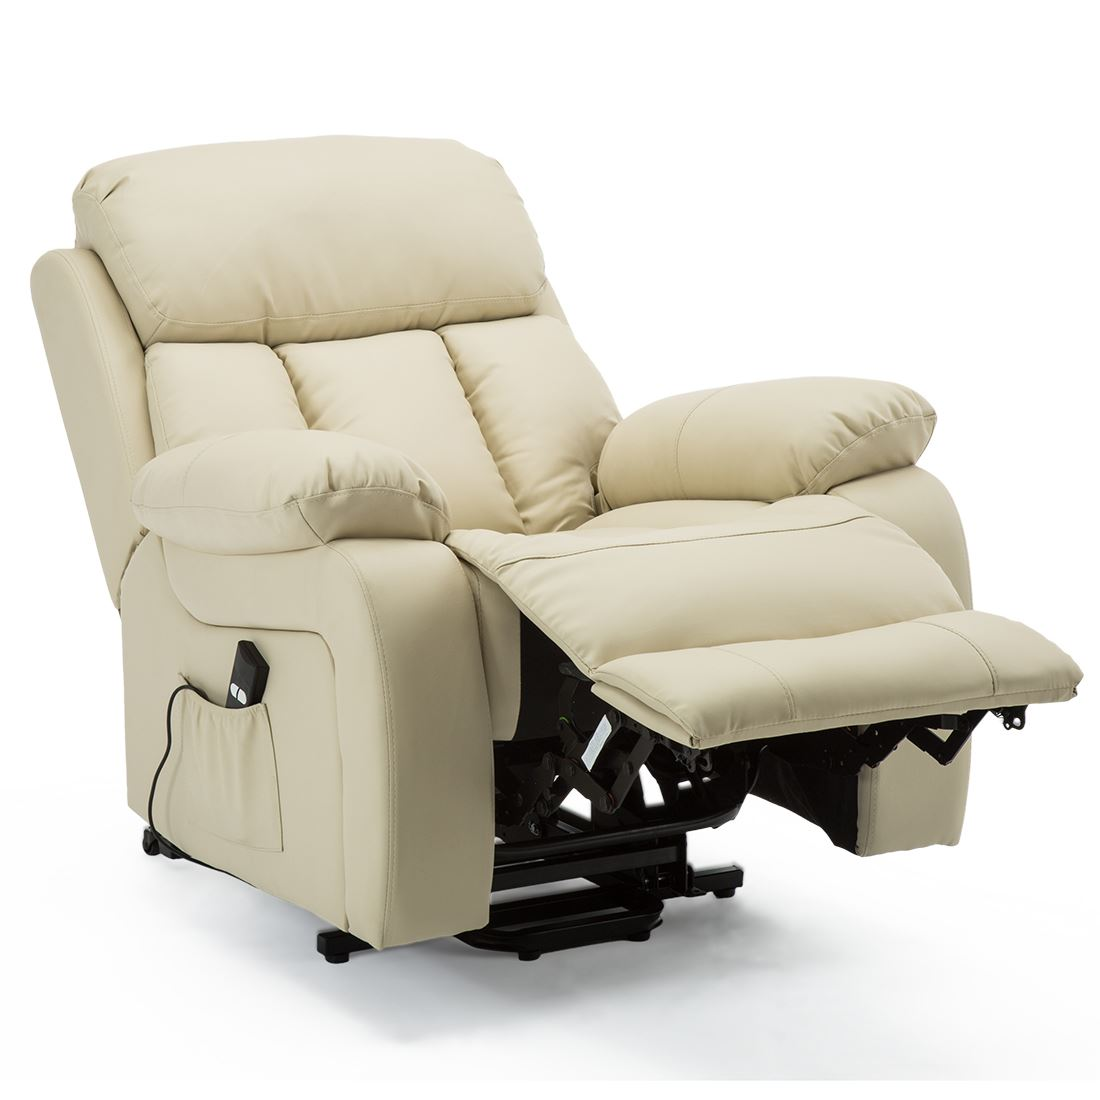 CHESTER-ELECTRIC-RISE-LEATHER-RECLINER-POWER-ARMCHAIR-HEATED-MASSAGE-SOFA-CHAIR thumbnail 23